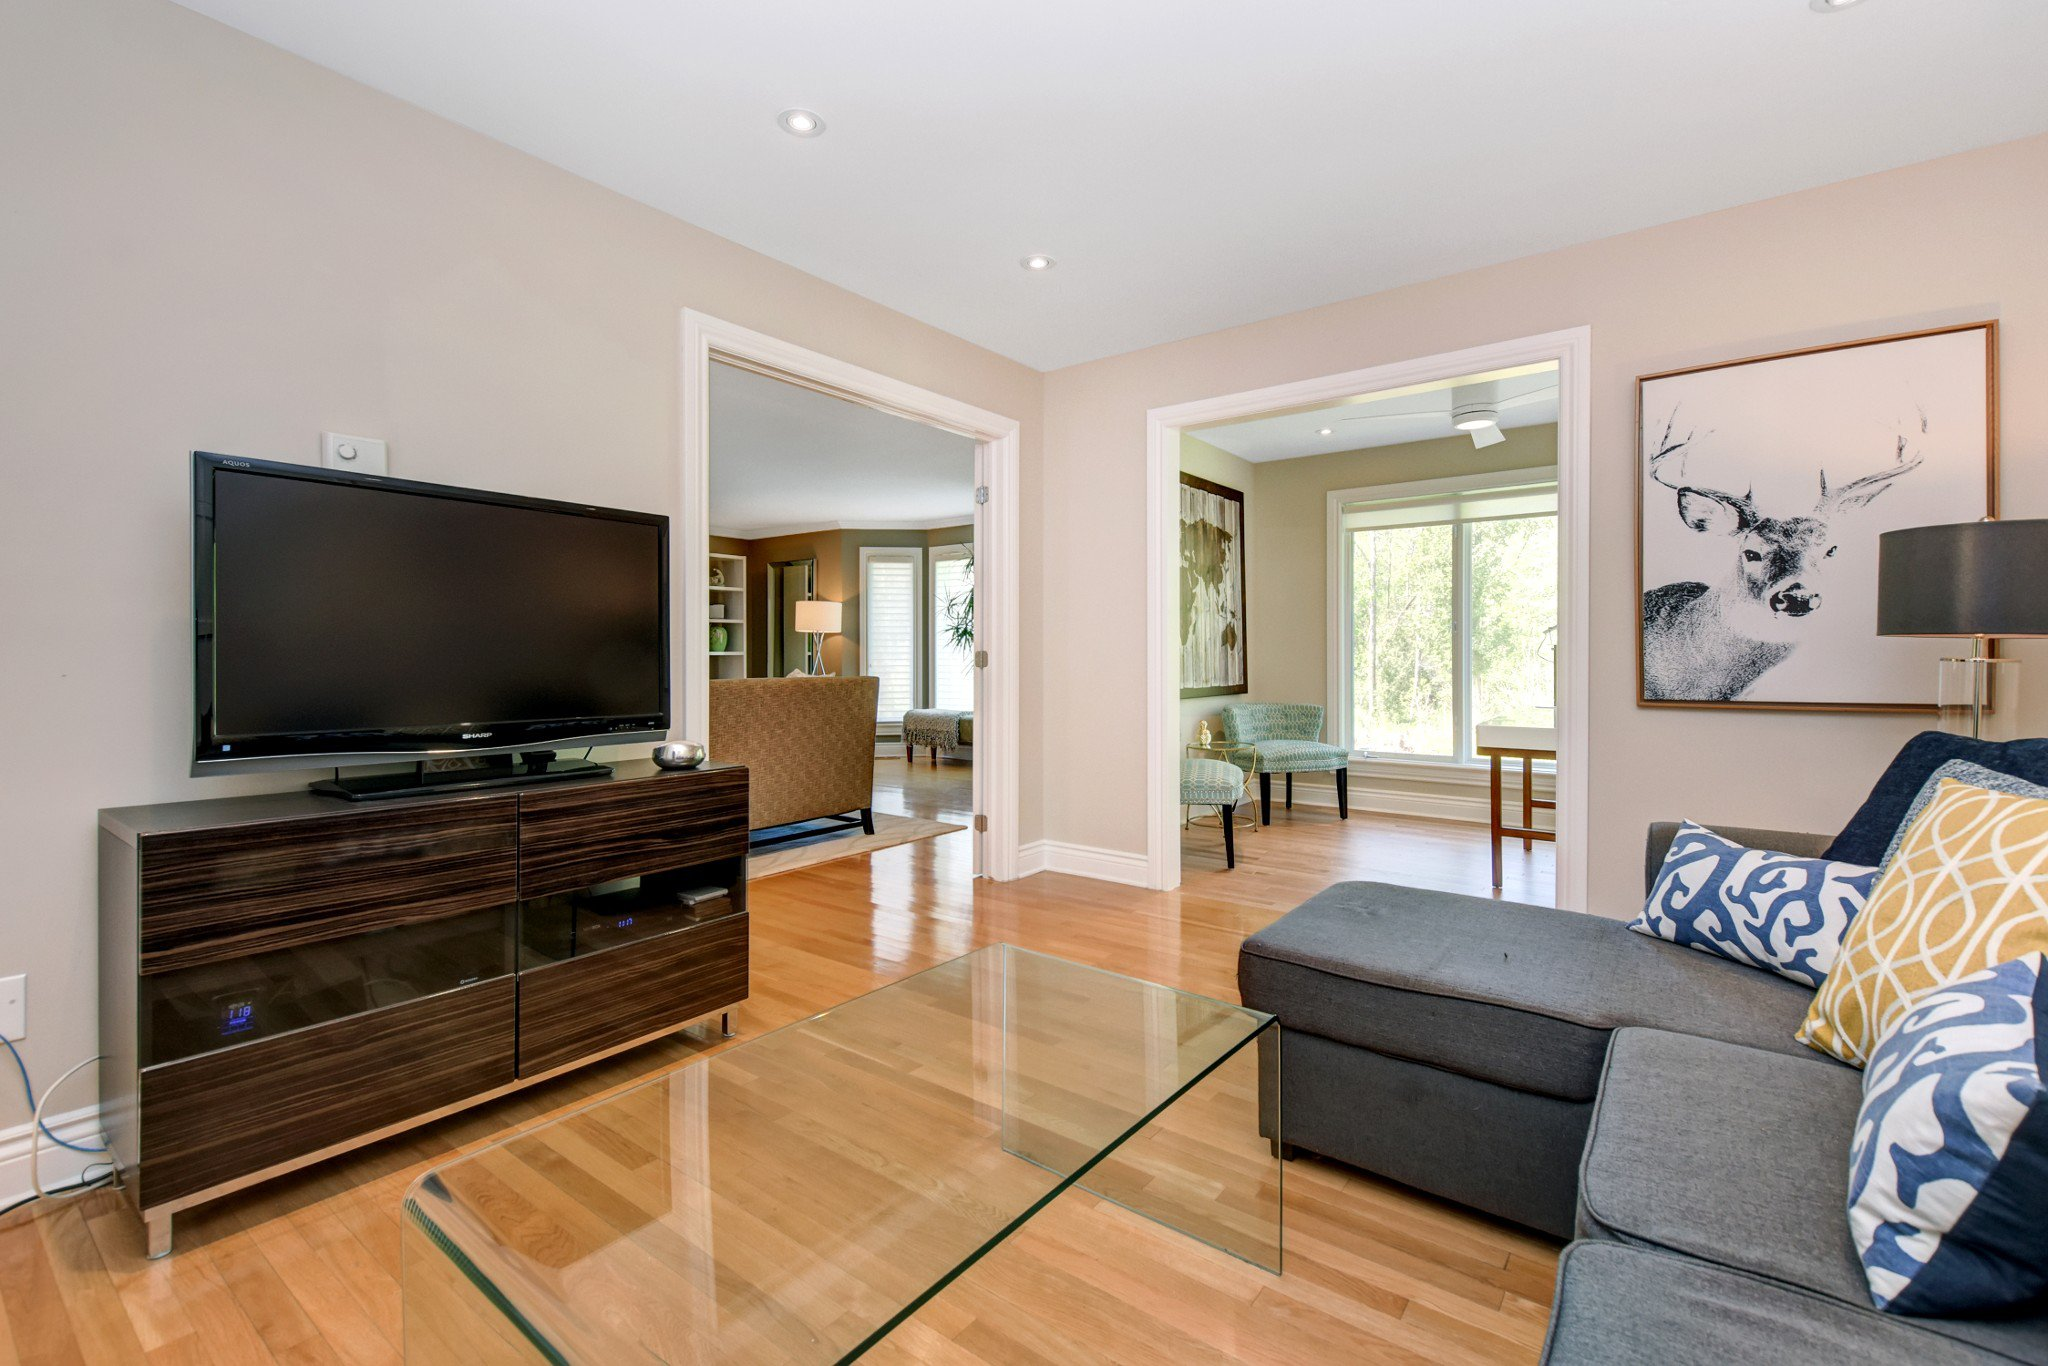 Photo 32: Photos: 1490 REINDEER WAY.: Greely House for sale (Ottawa)  : MLS®# 1109530